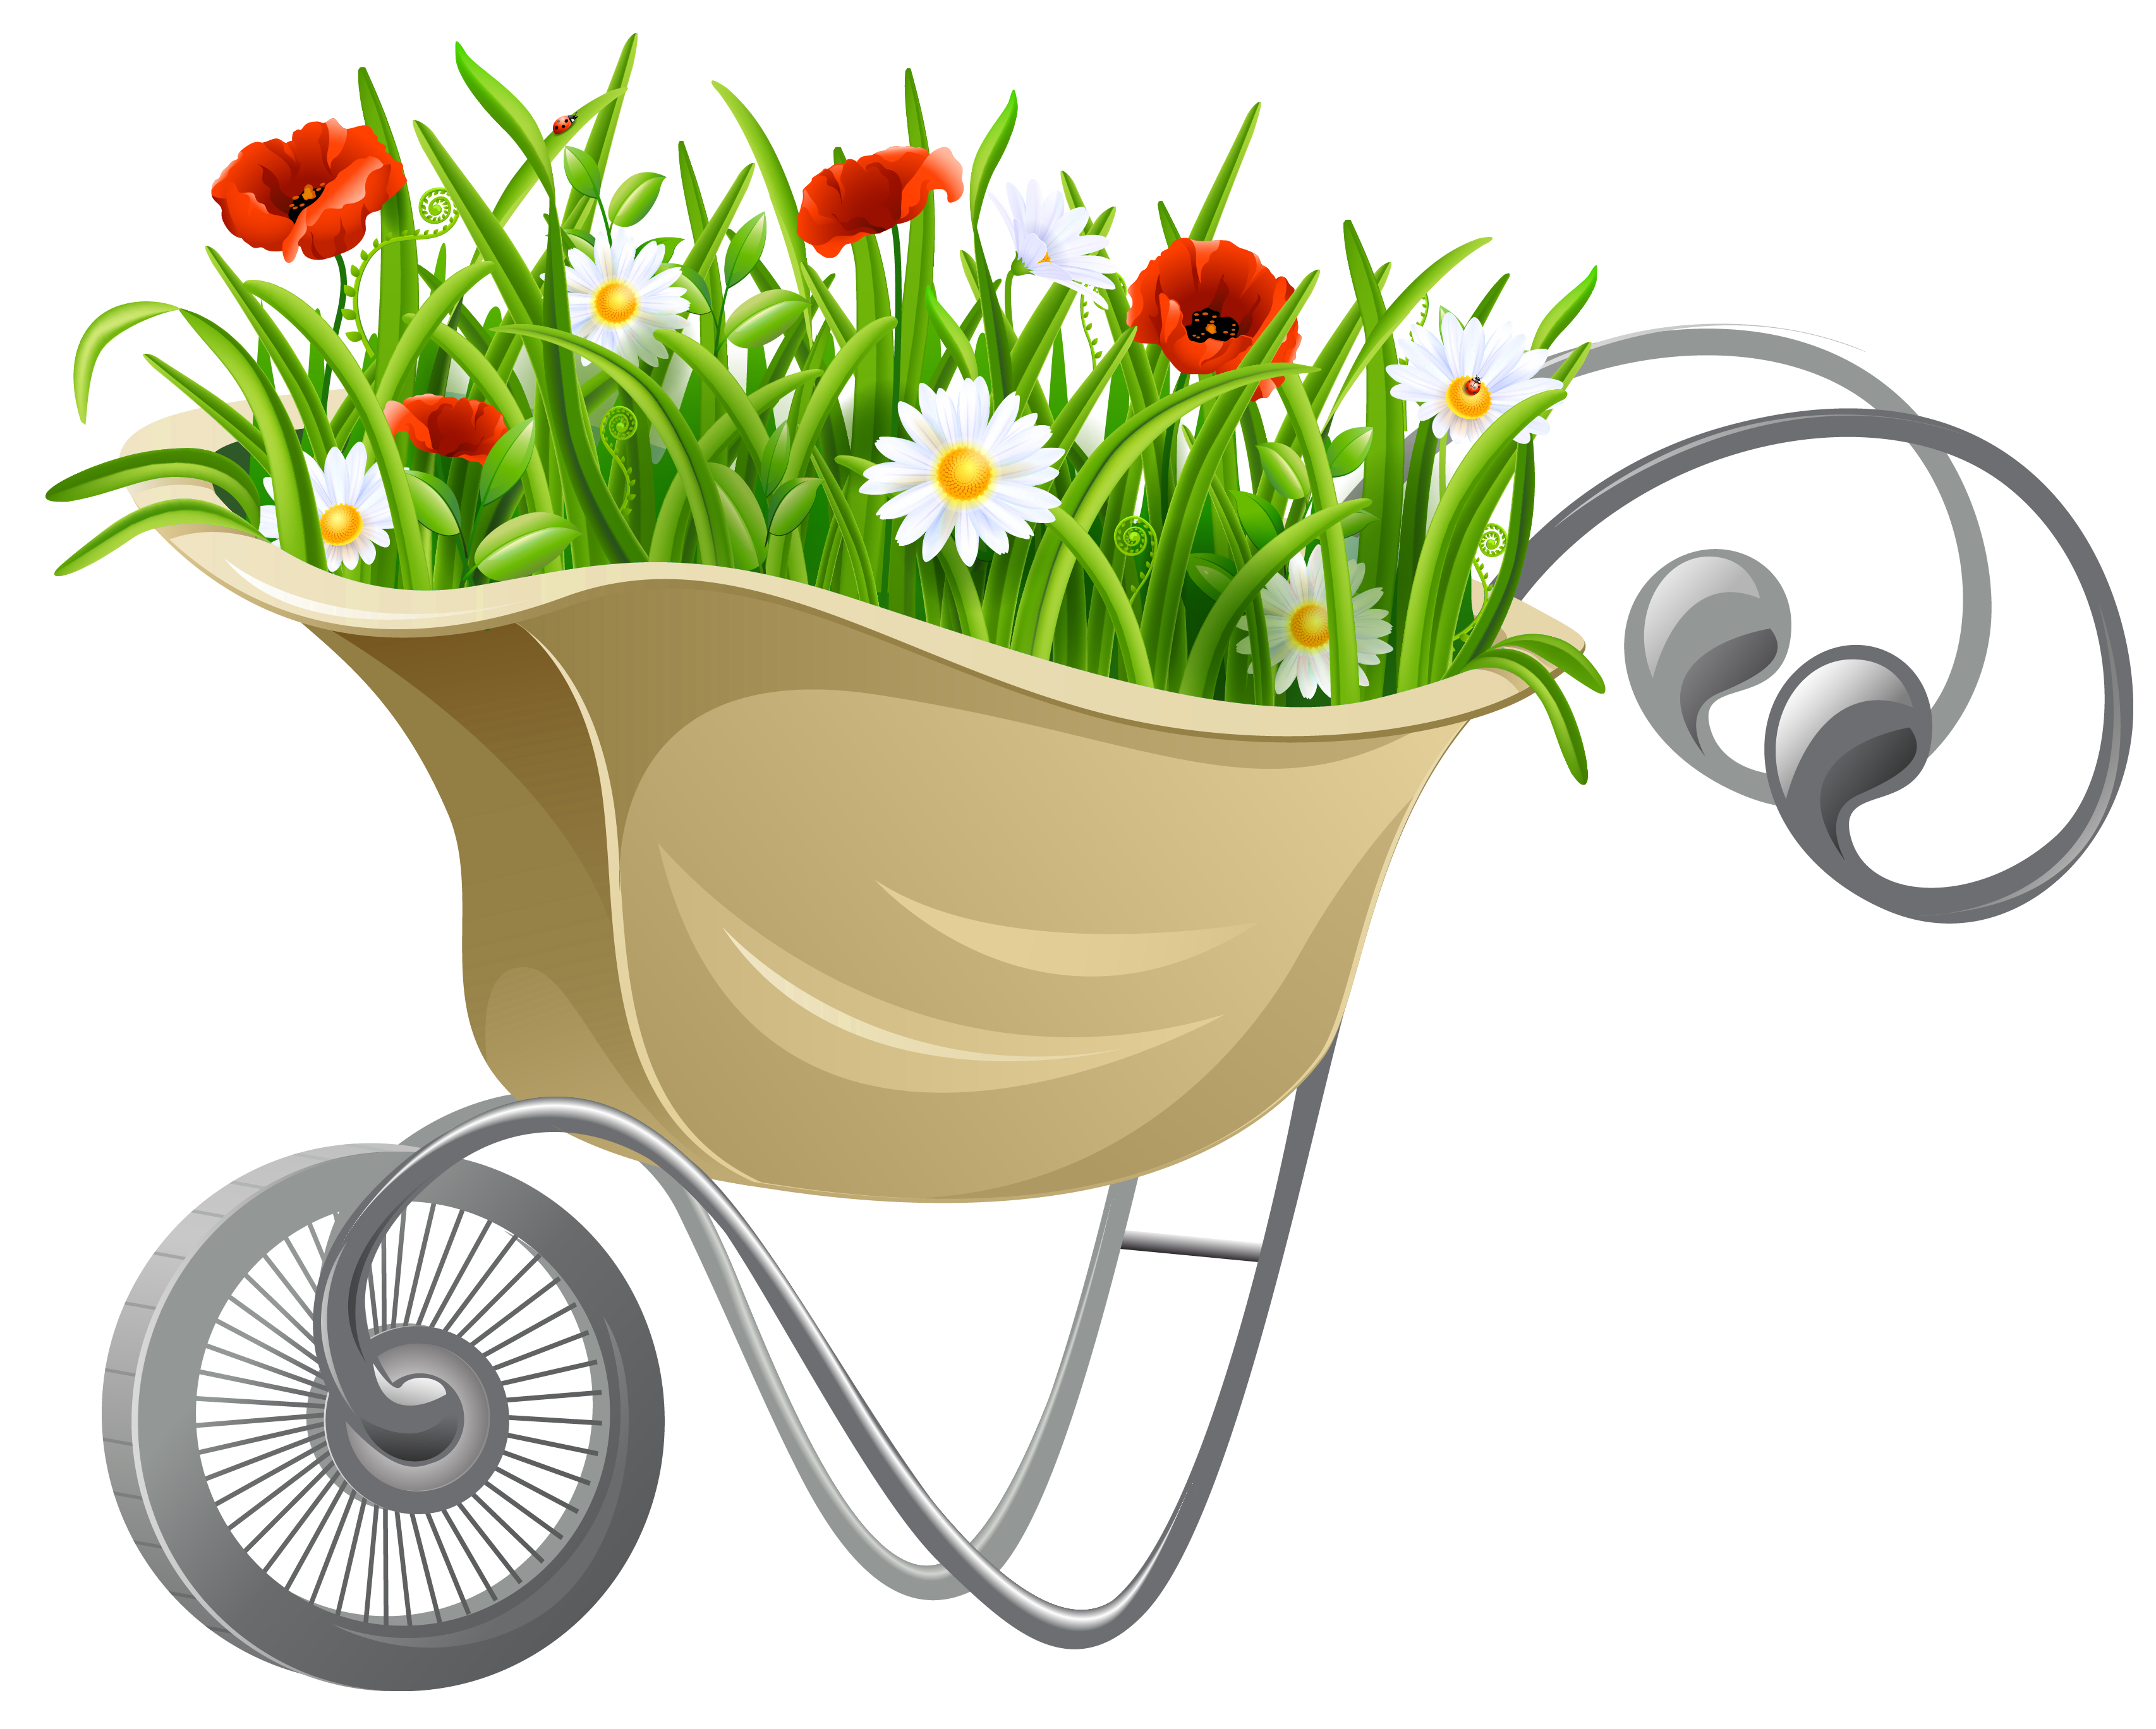 svg download Wheelbarrow clipart transparent background. With flowers png gallery